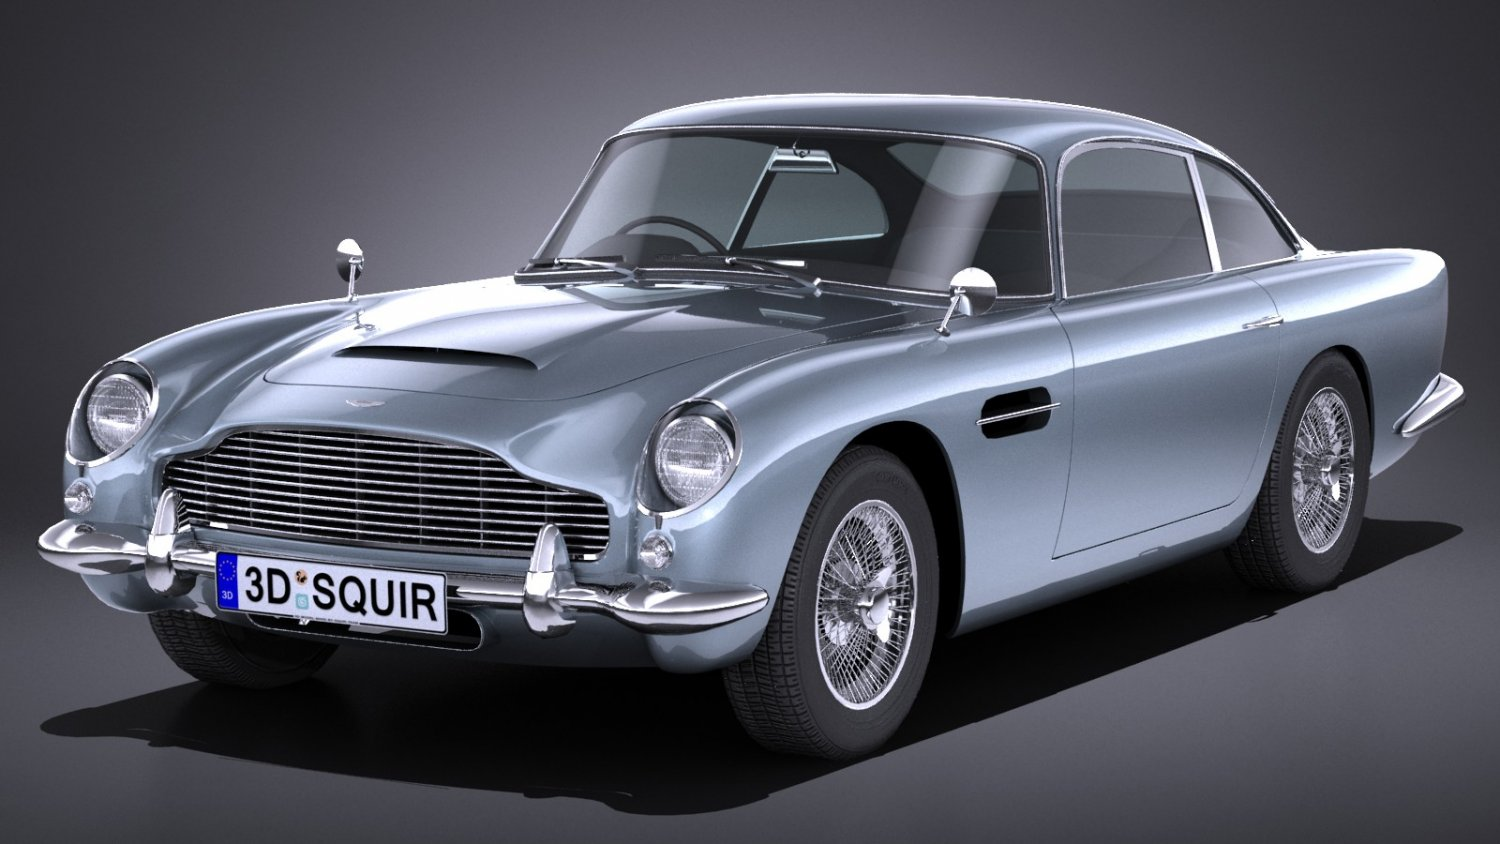 3DExport LowPoly Aston Martin DB5 1963 3D Model in Classic Cars 3DExport $5.00*· In stock·Brand: 3DExport.com Royalty free LowPoly Aston Martin DB5 1963 3D Model by SQUIR. Available formats: c4d, max, obj, fbx, ma, blend, 3ds, 3dm, stl - 3DExport.com * Check website for latest pricing and availability. Images may be subject to copyright. Learn More Related images